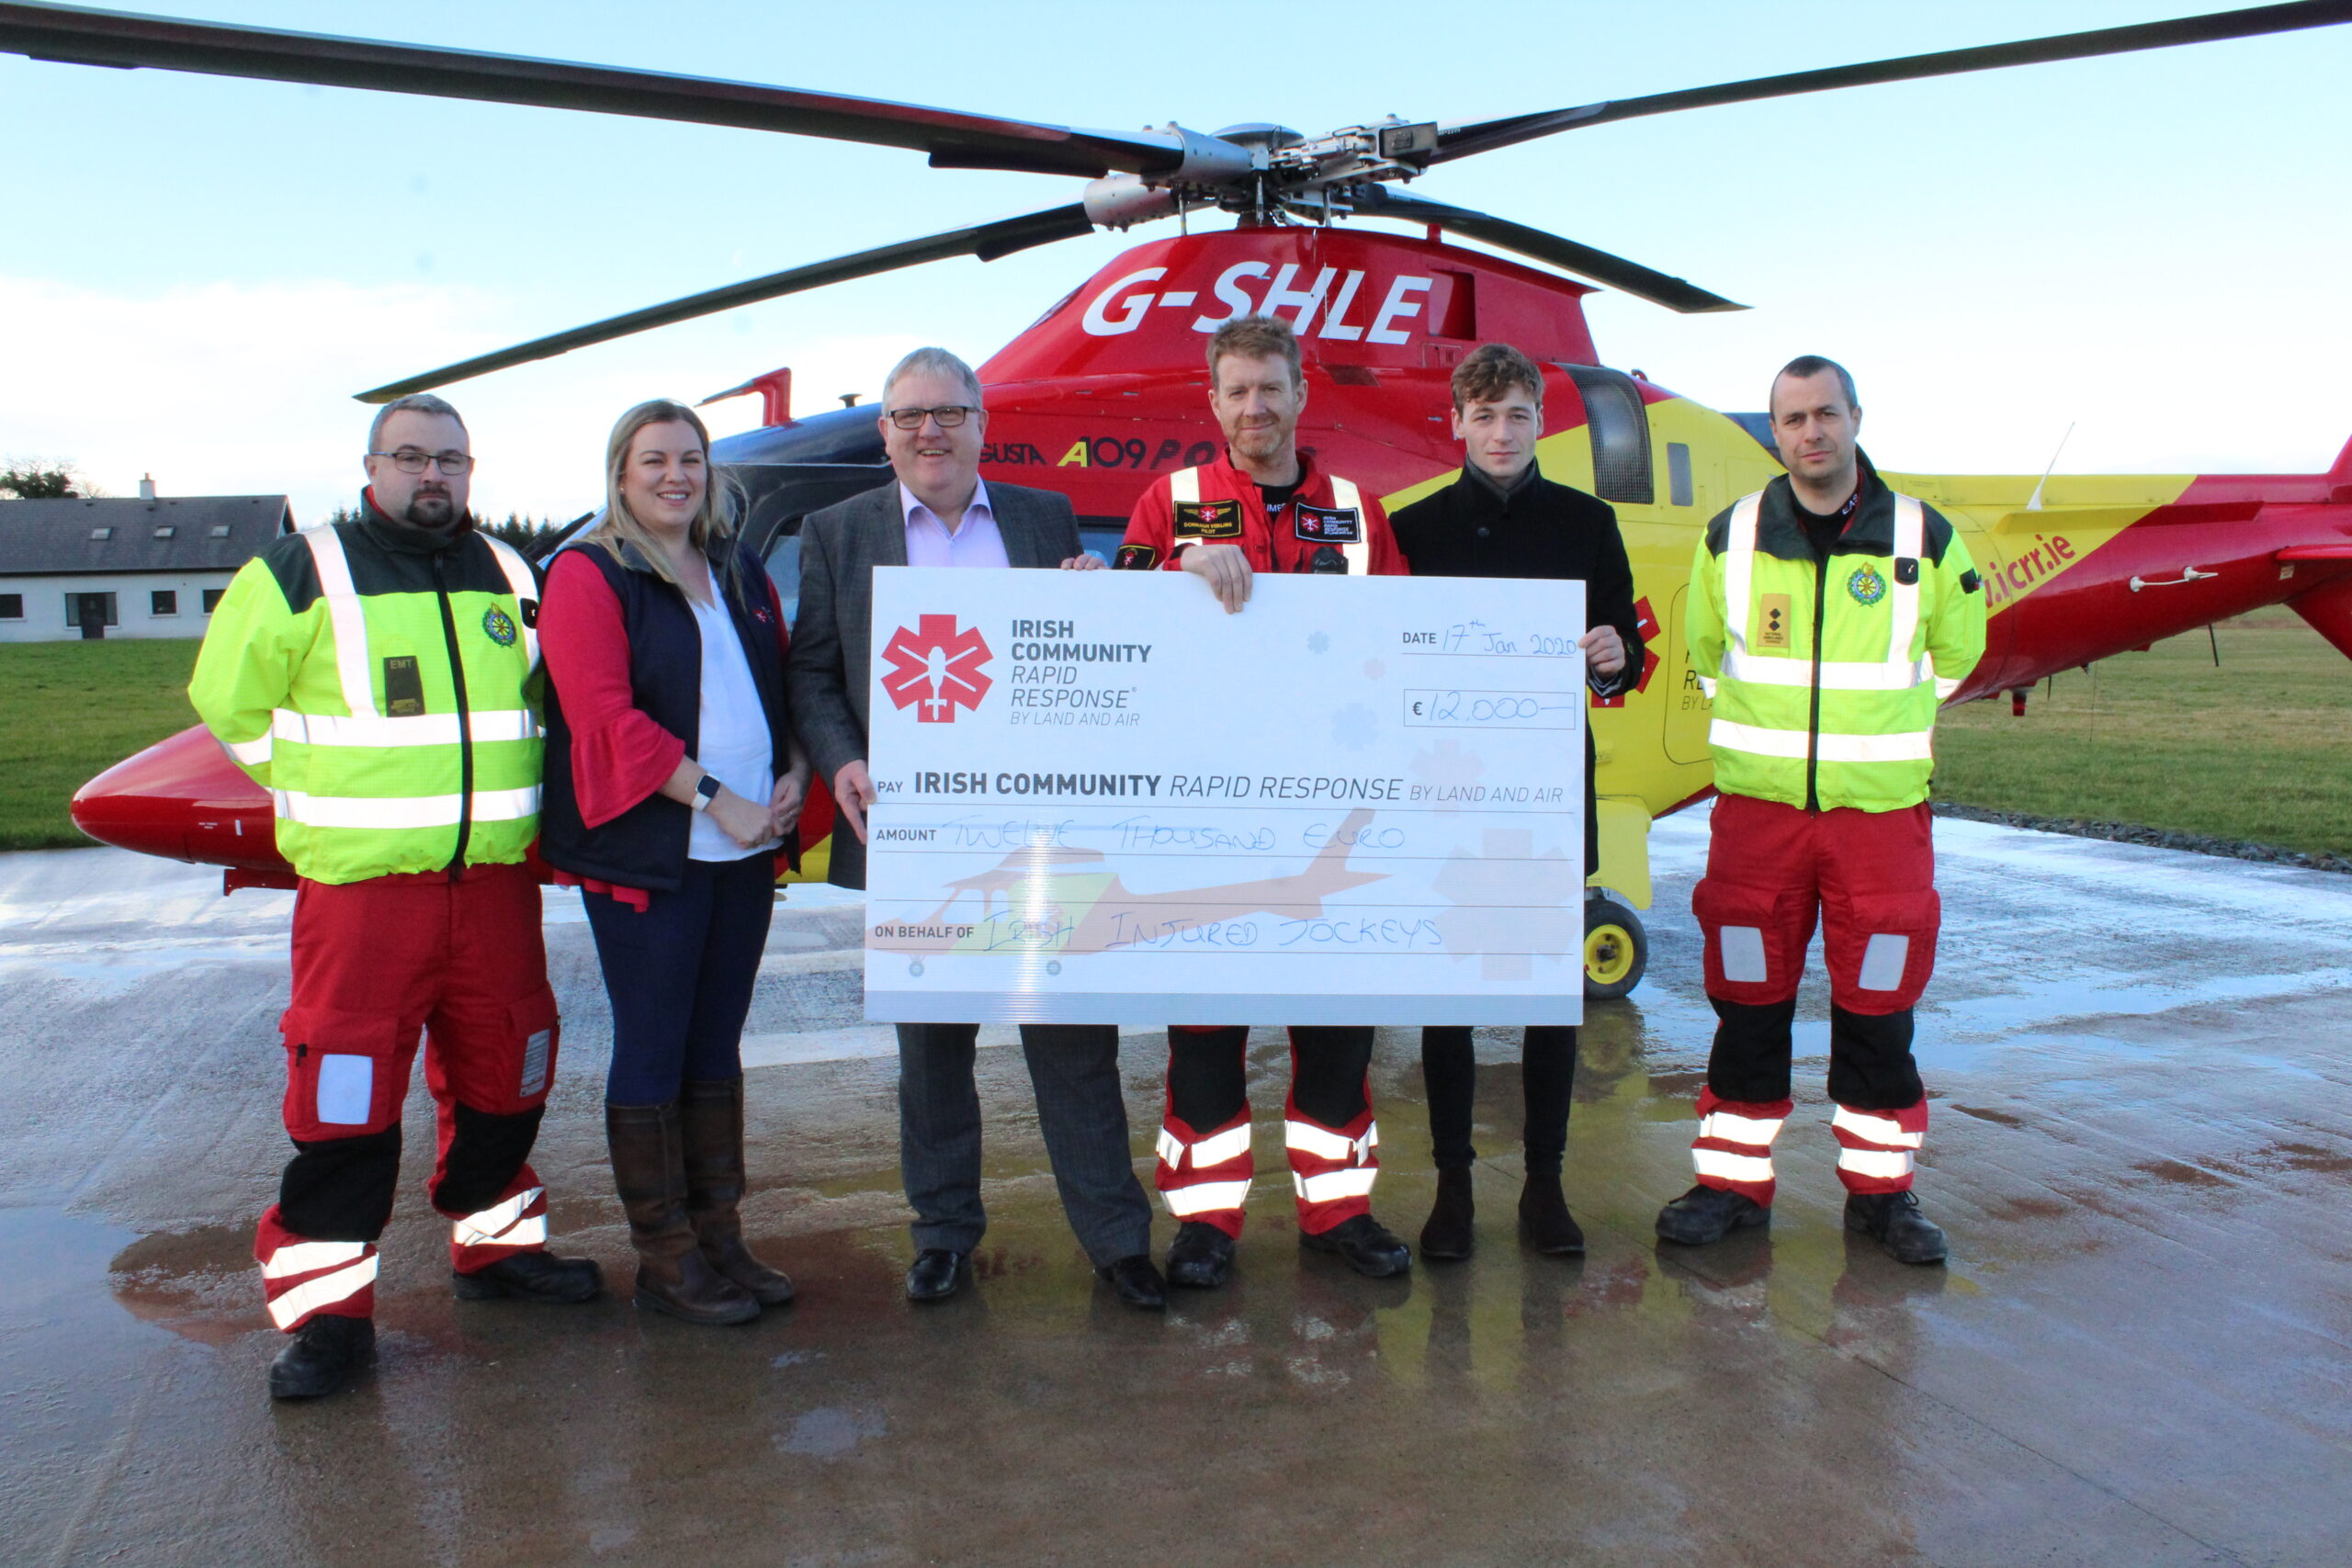 Irish Injured jockeys show thanks to charity Air Ambulance through €12,000 donation